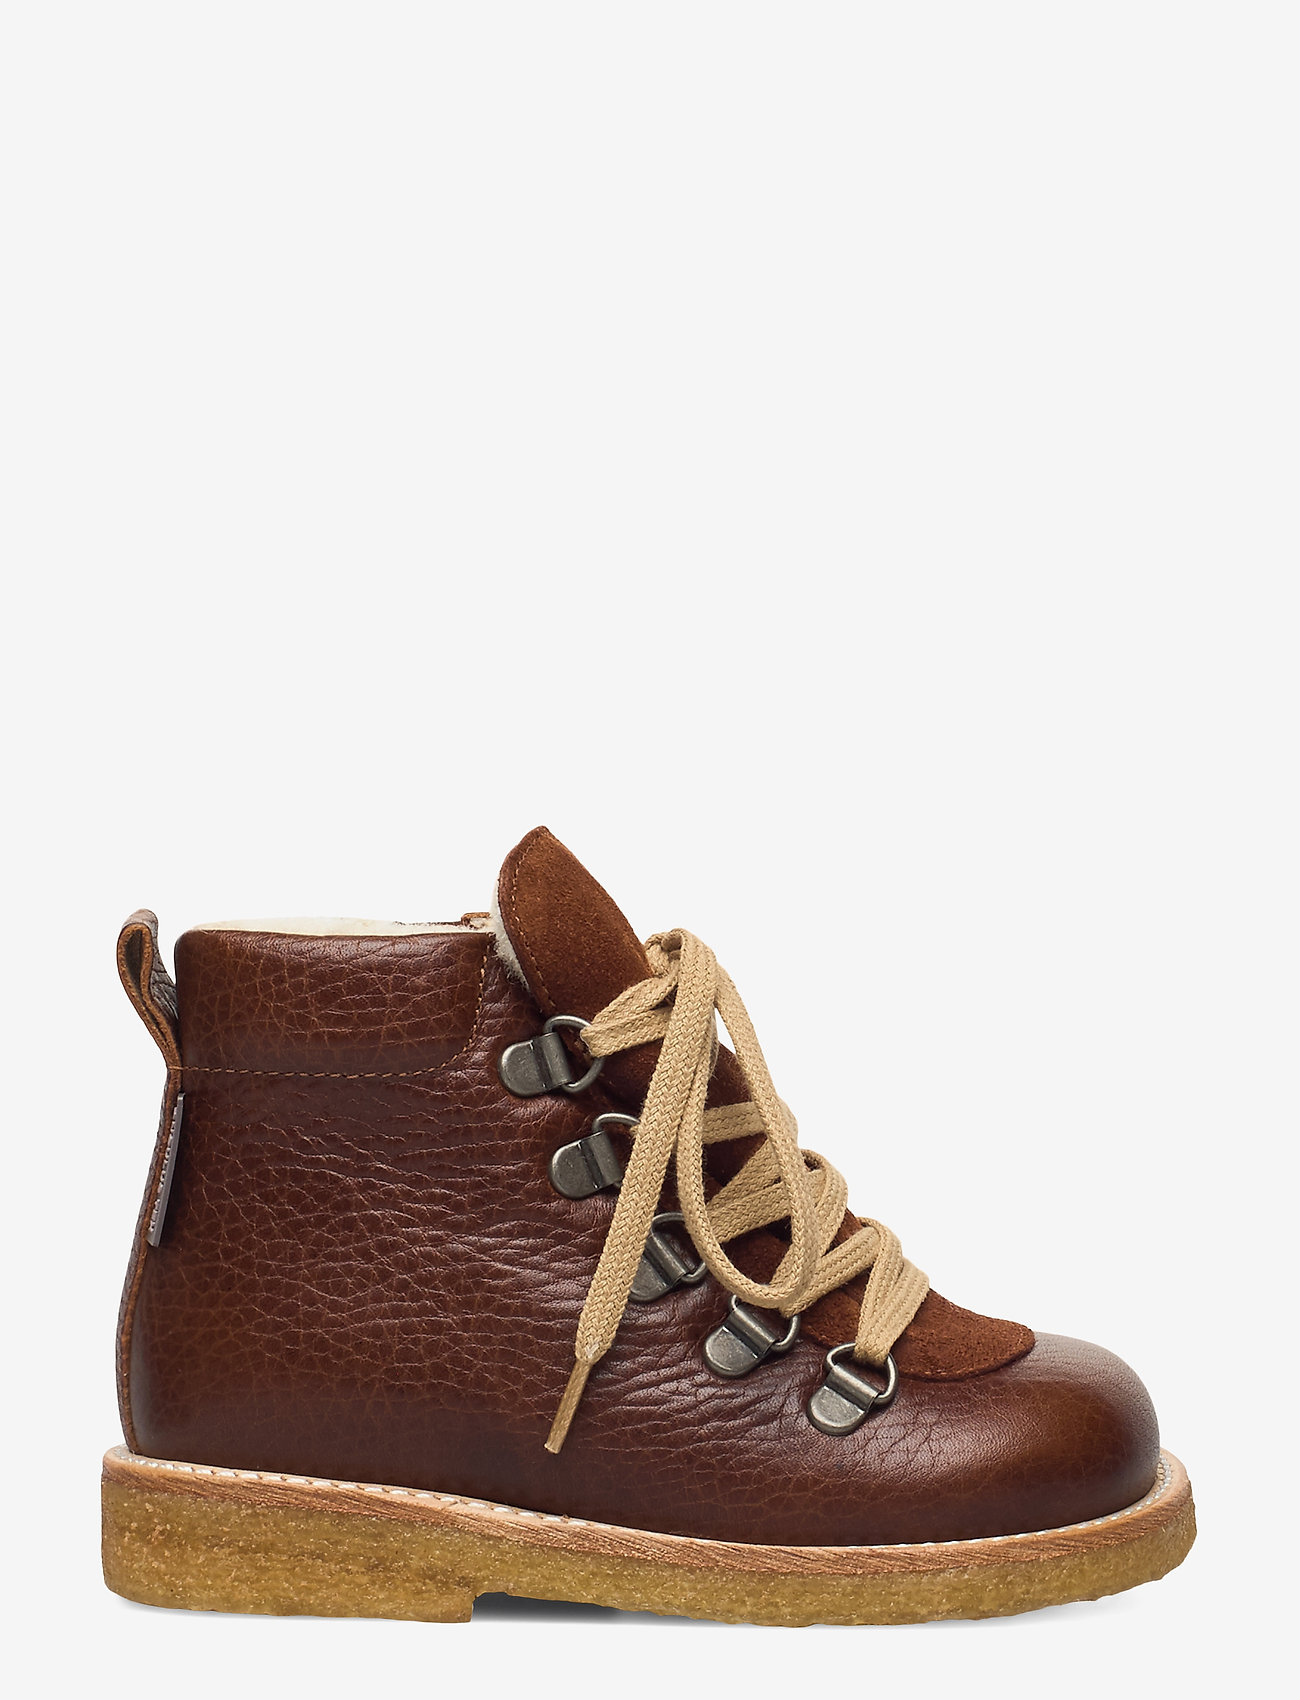 ANGULUS - Boots - flat - with lace and zip - pre-walkers - 2509/1166 medium brown/cognac - 1